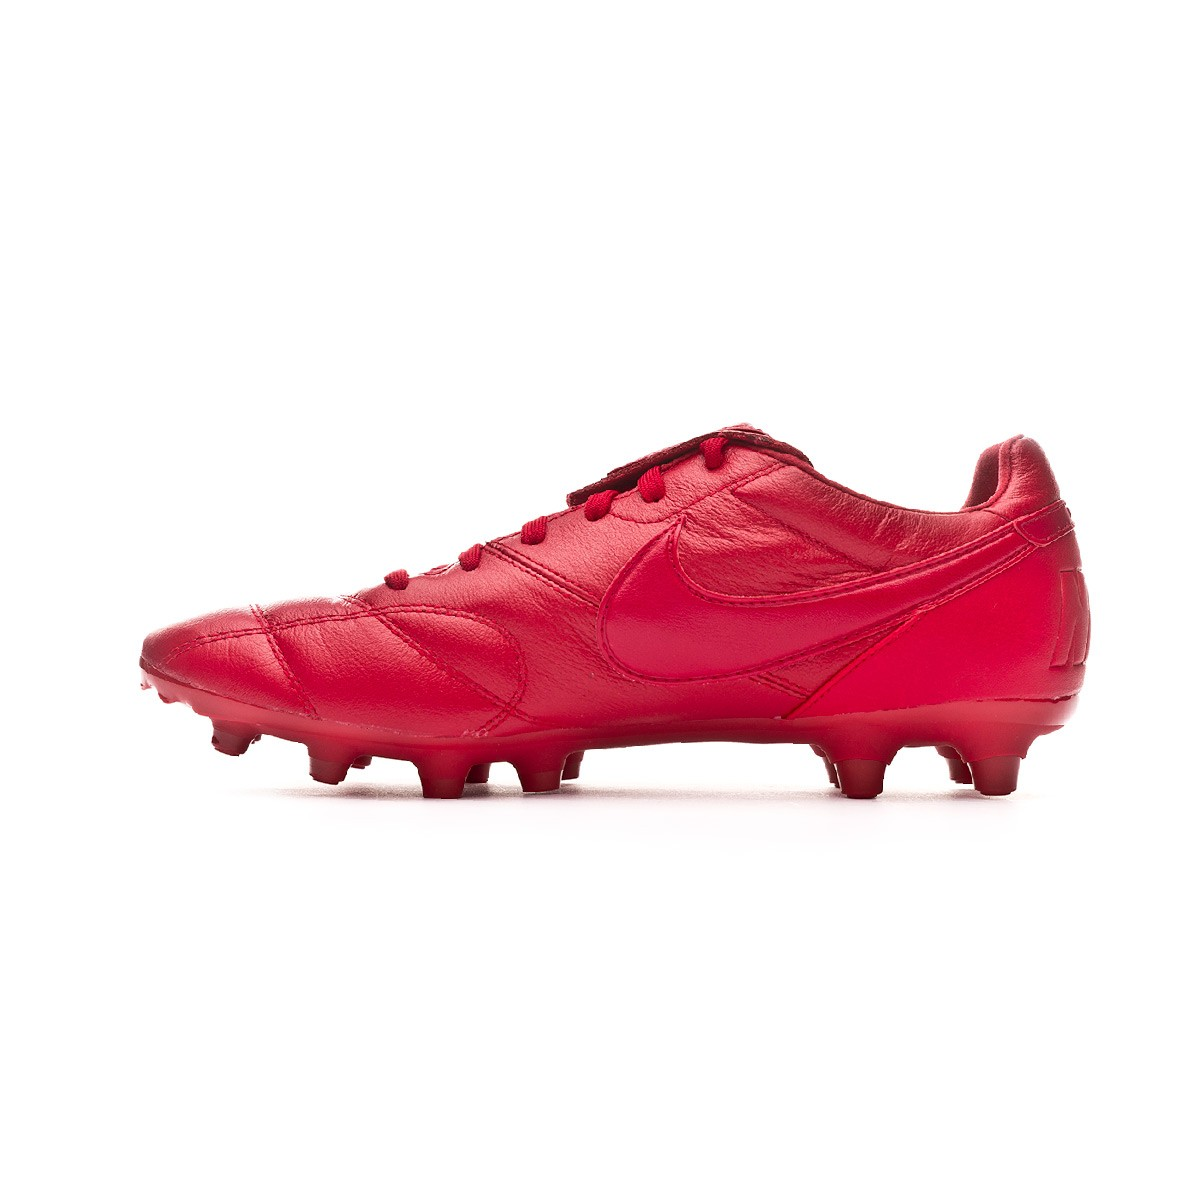 d2301716d Football Boots Nike Tiempo Premier II FG Gym red - Football store Fútbol  Emotion